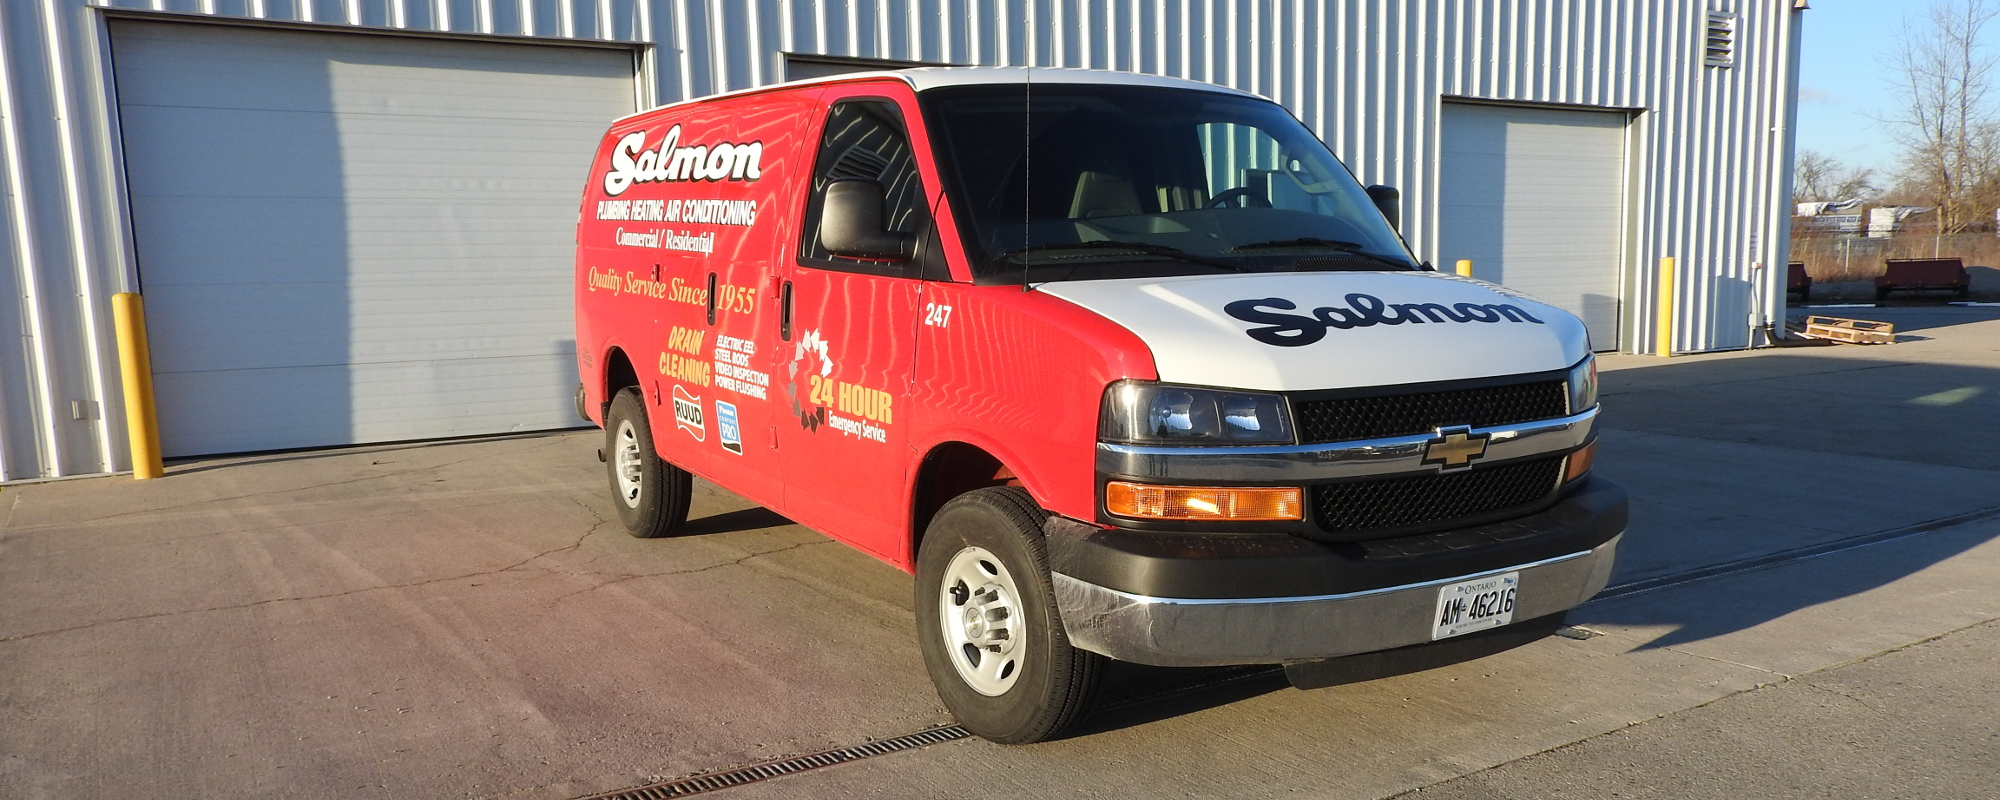 Salmon Plumbing & Heating - Truck